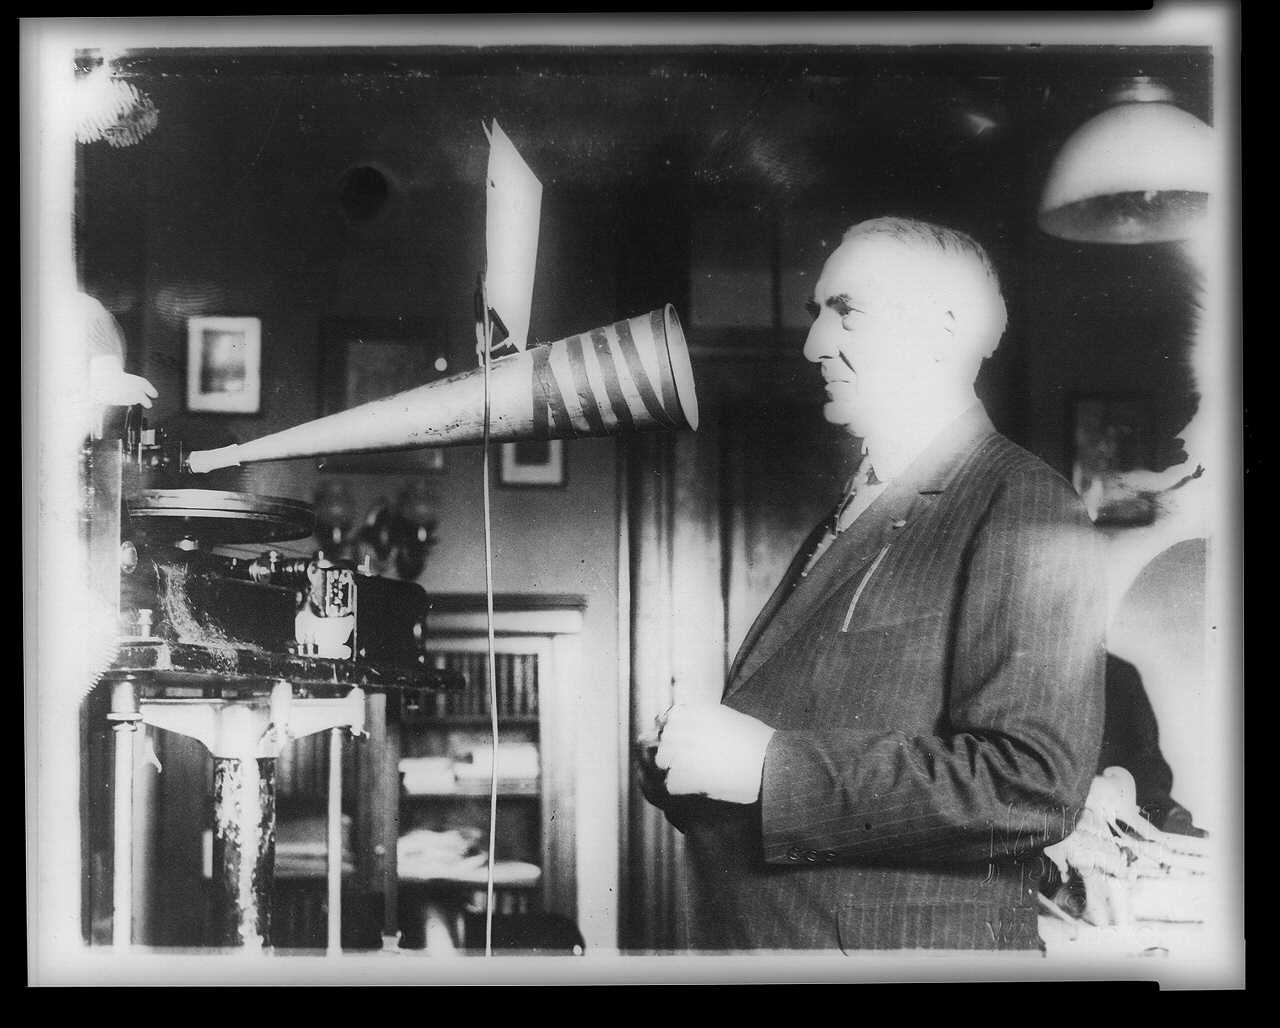 In 1922, President Warren G. Harding made a sound recording of his voice, for archival purposes. He died in 1923, succeeded by Calvin Coolidge. National Archives image.